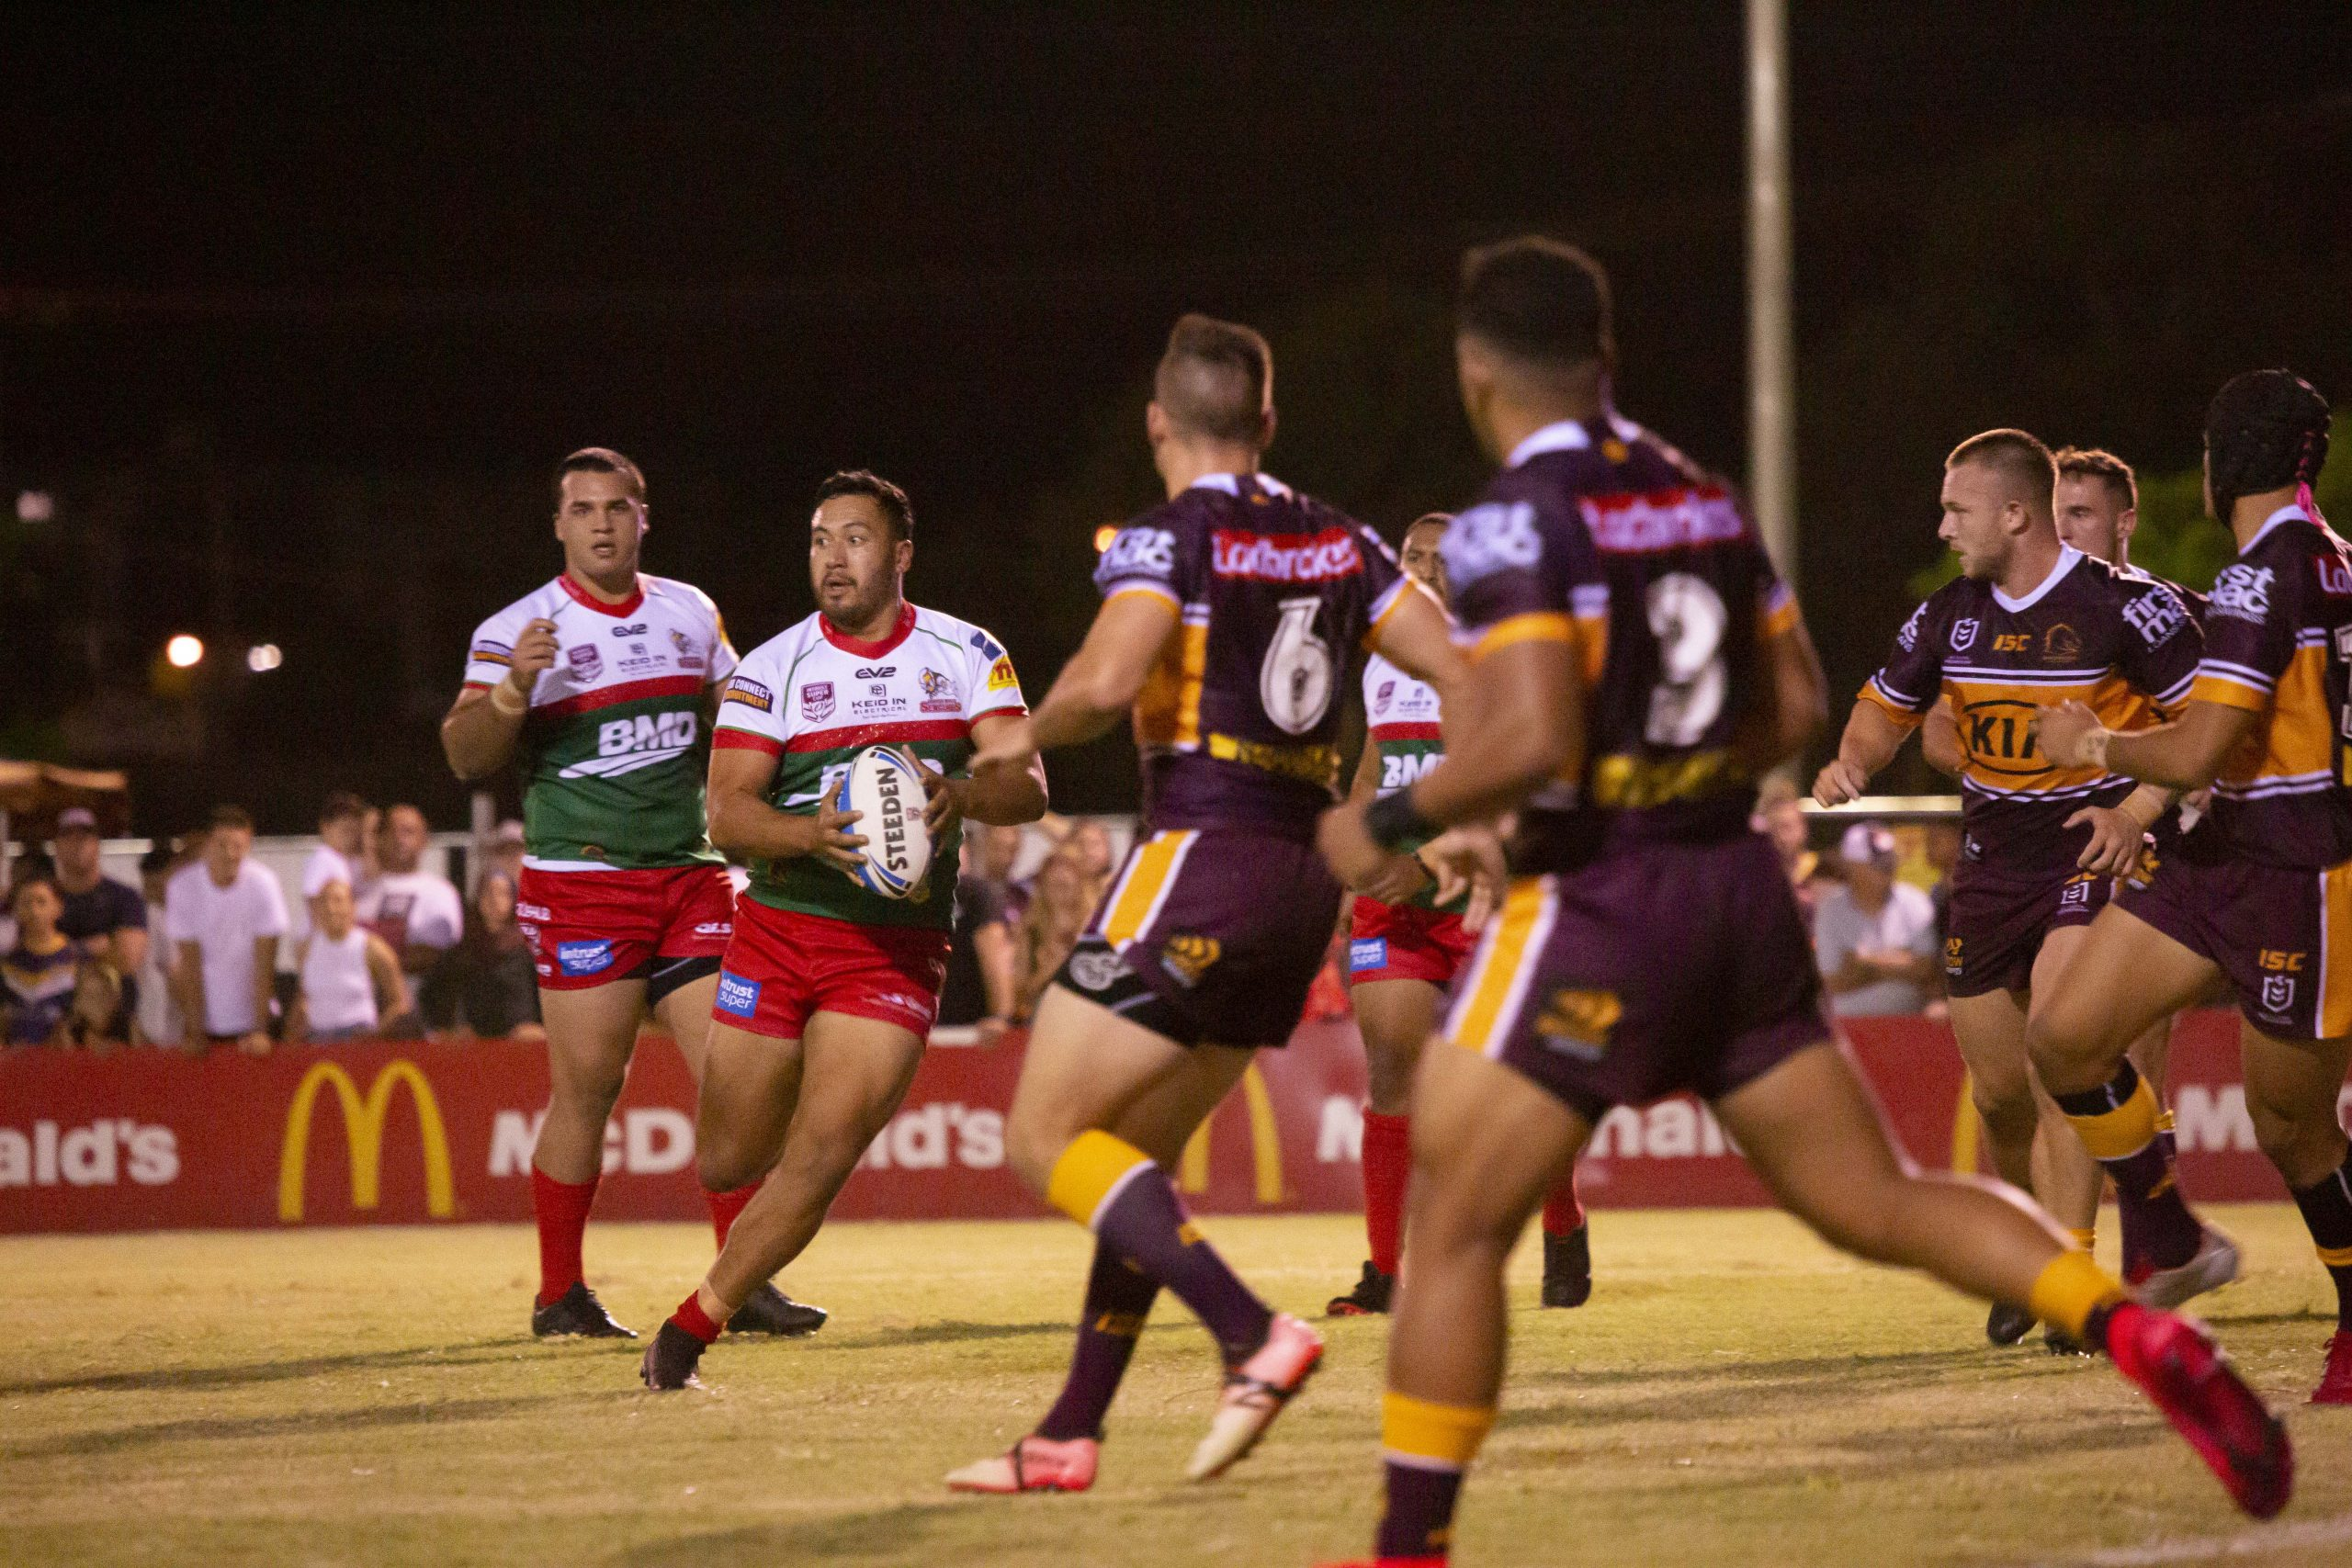 Seagulls to host Broncos in NRL Trial